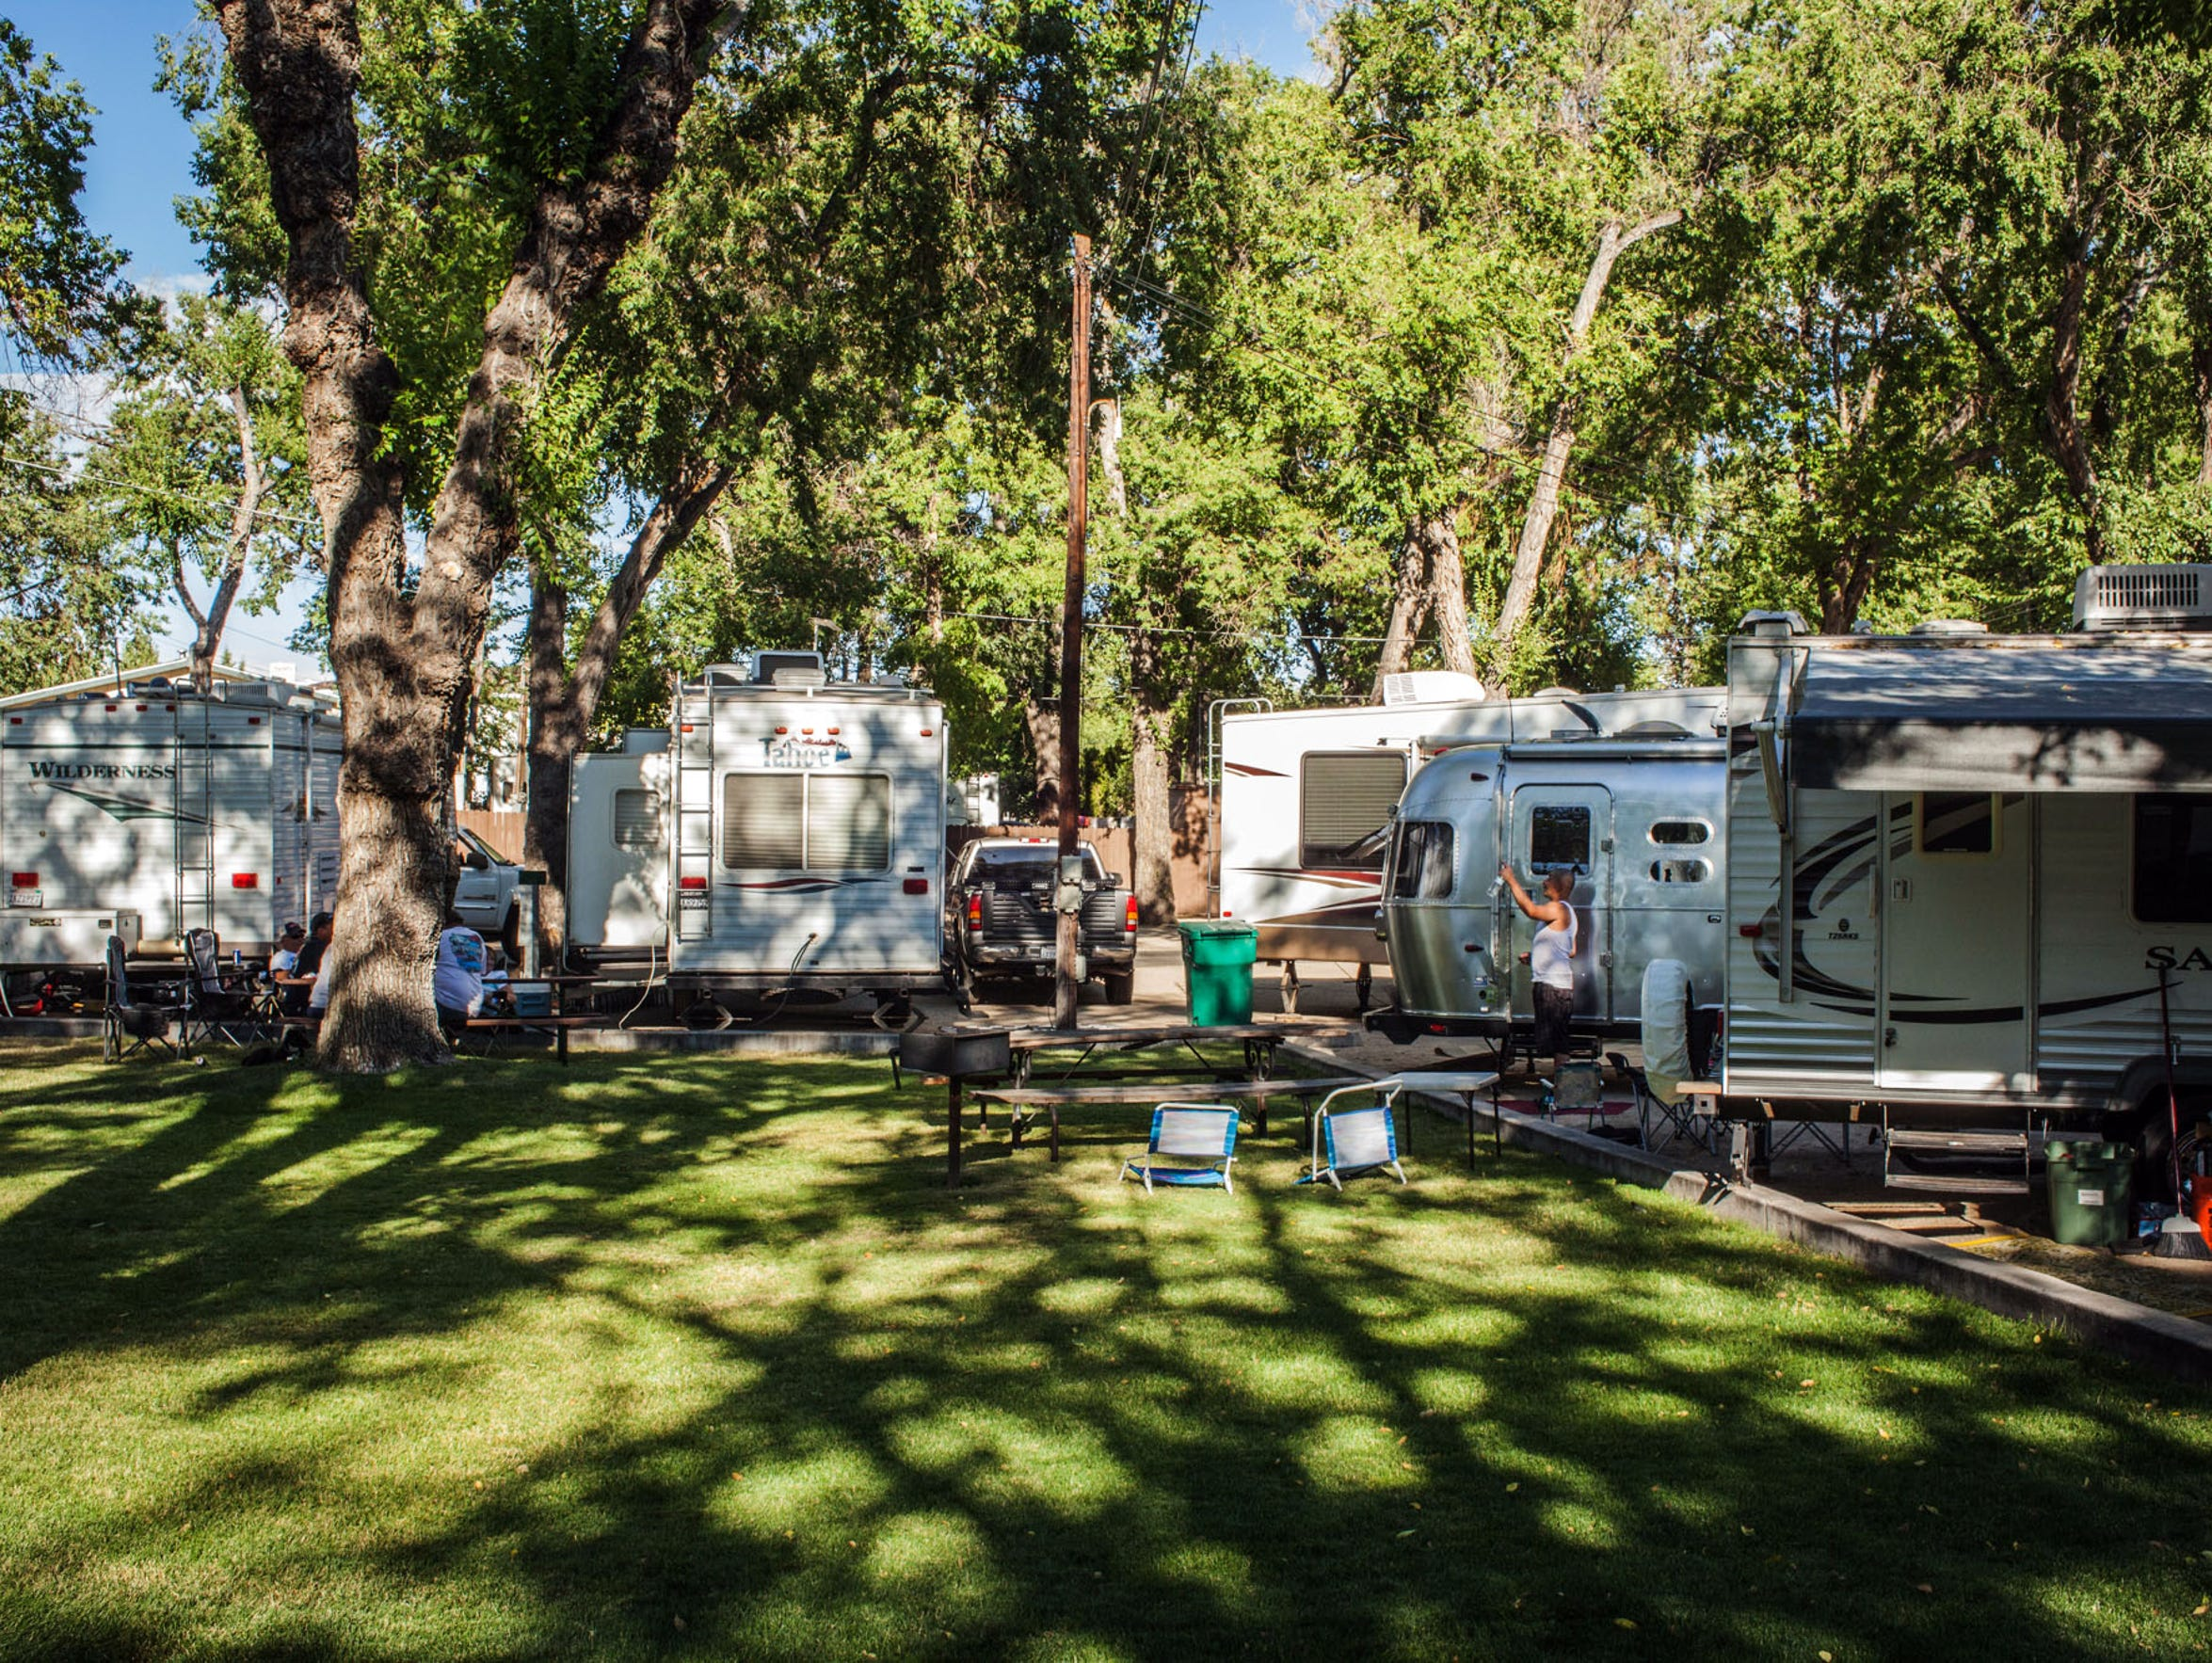 The community park area at River West Resort RV and